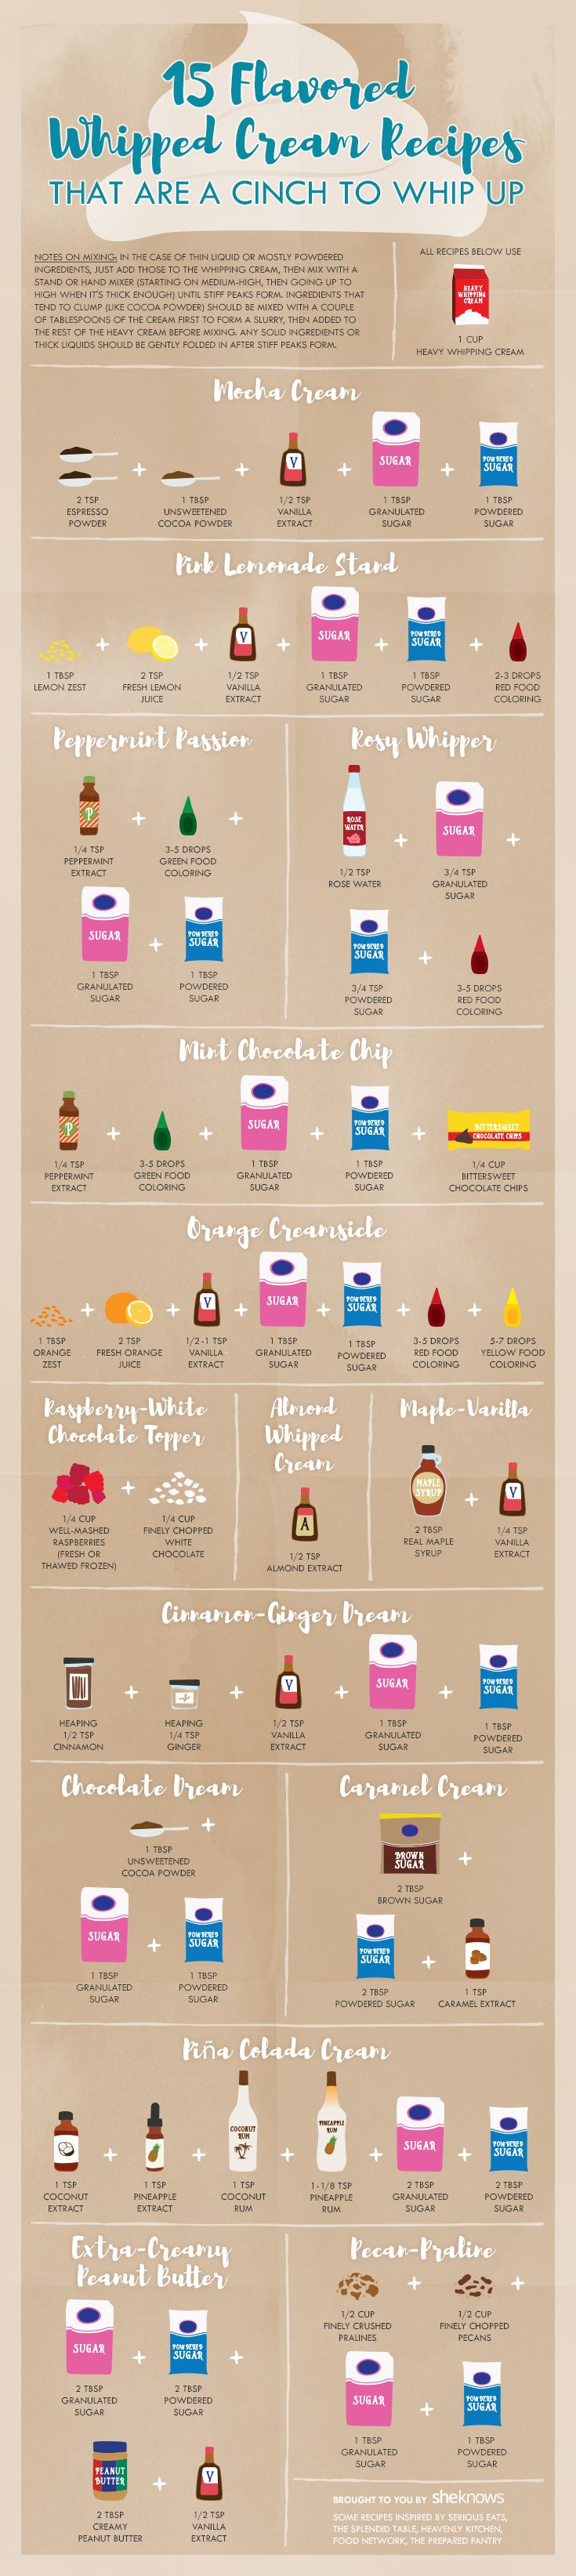 Making flavored whipped cream at home is so simple you'll wonder why you ever used store-bought - Infographic, Illustration